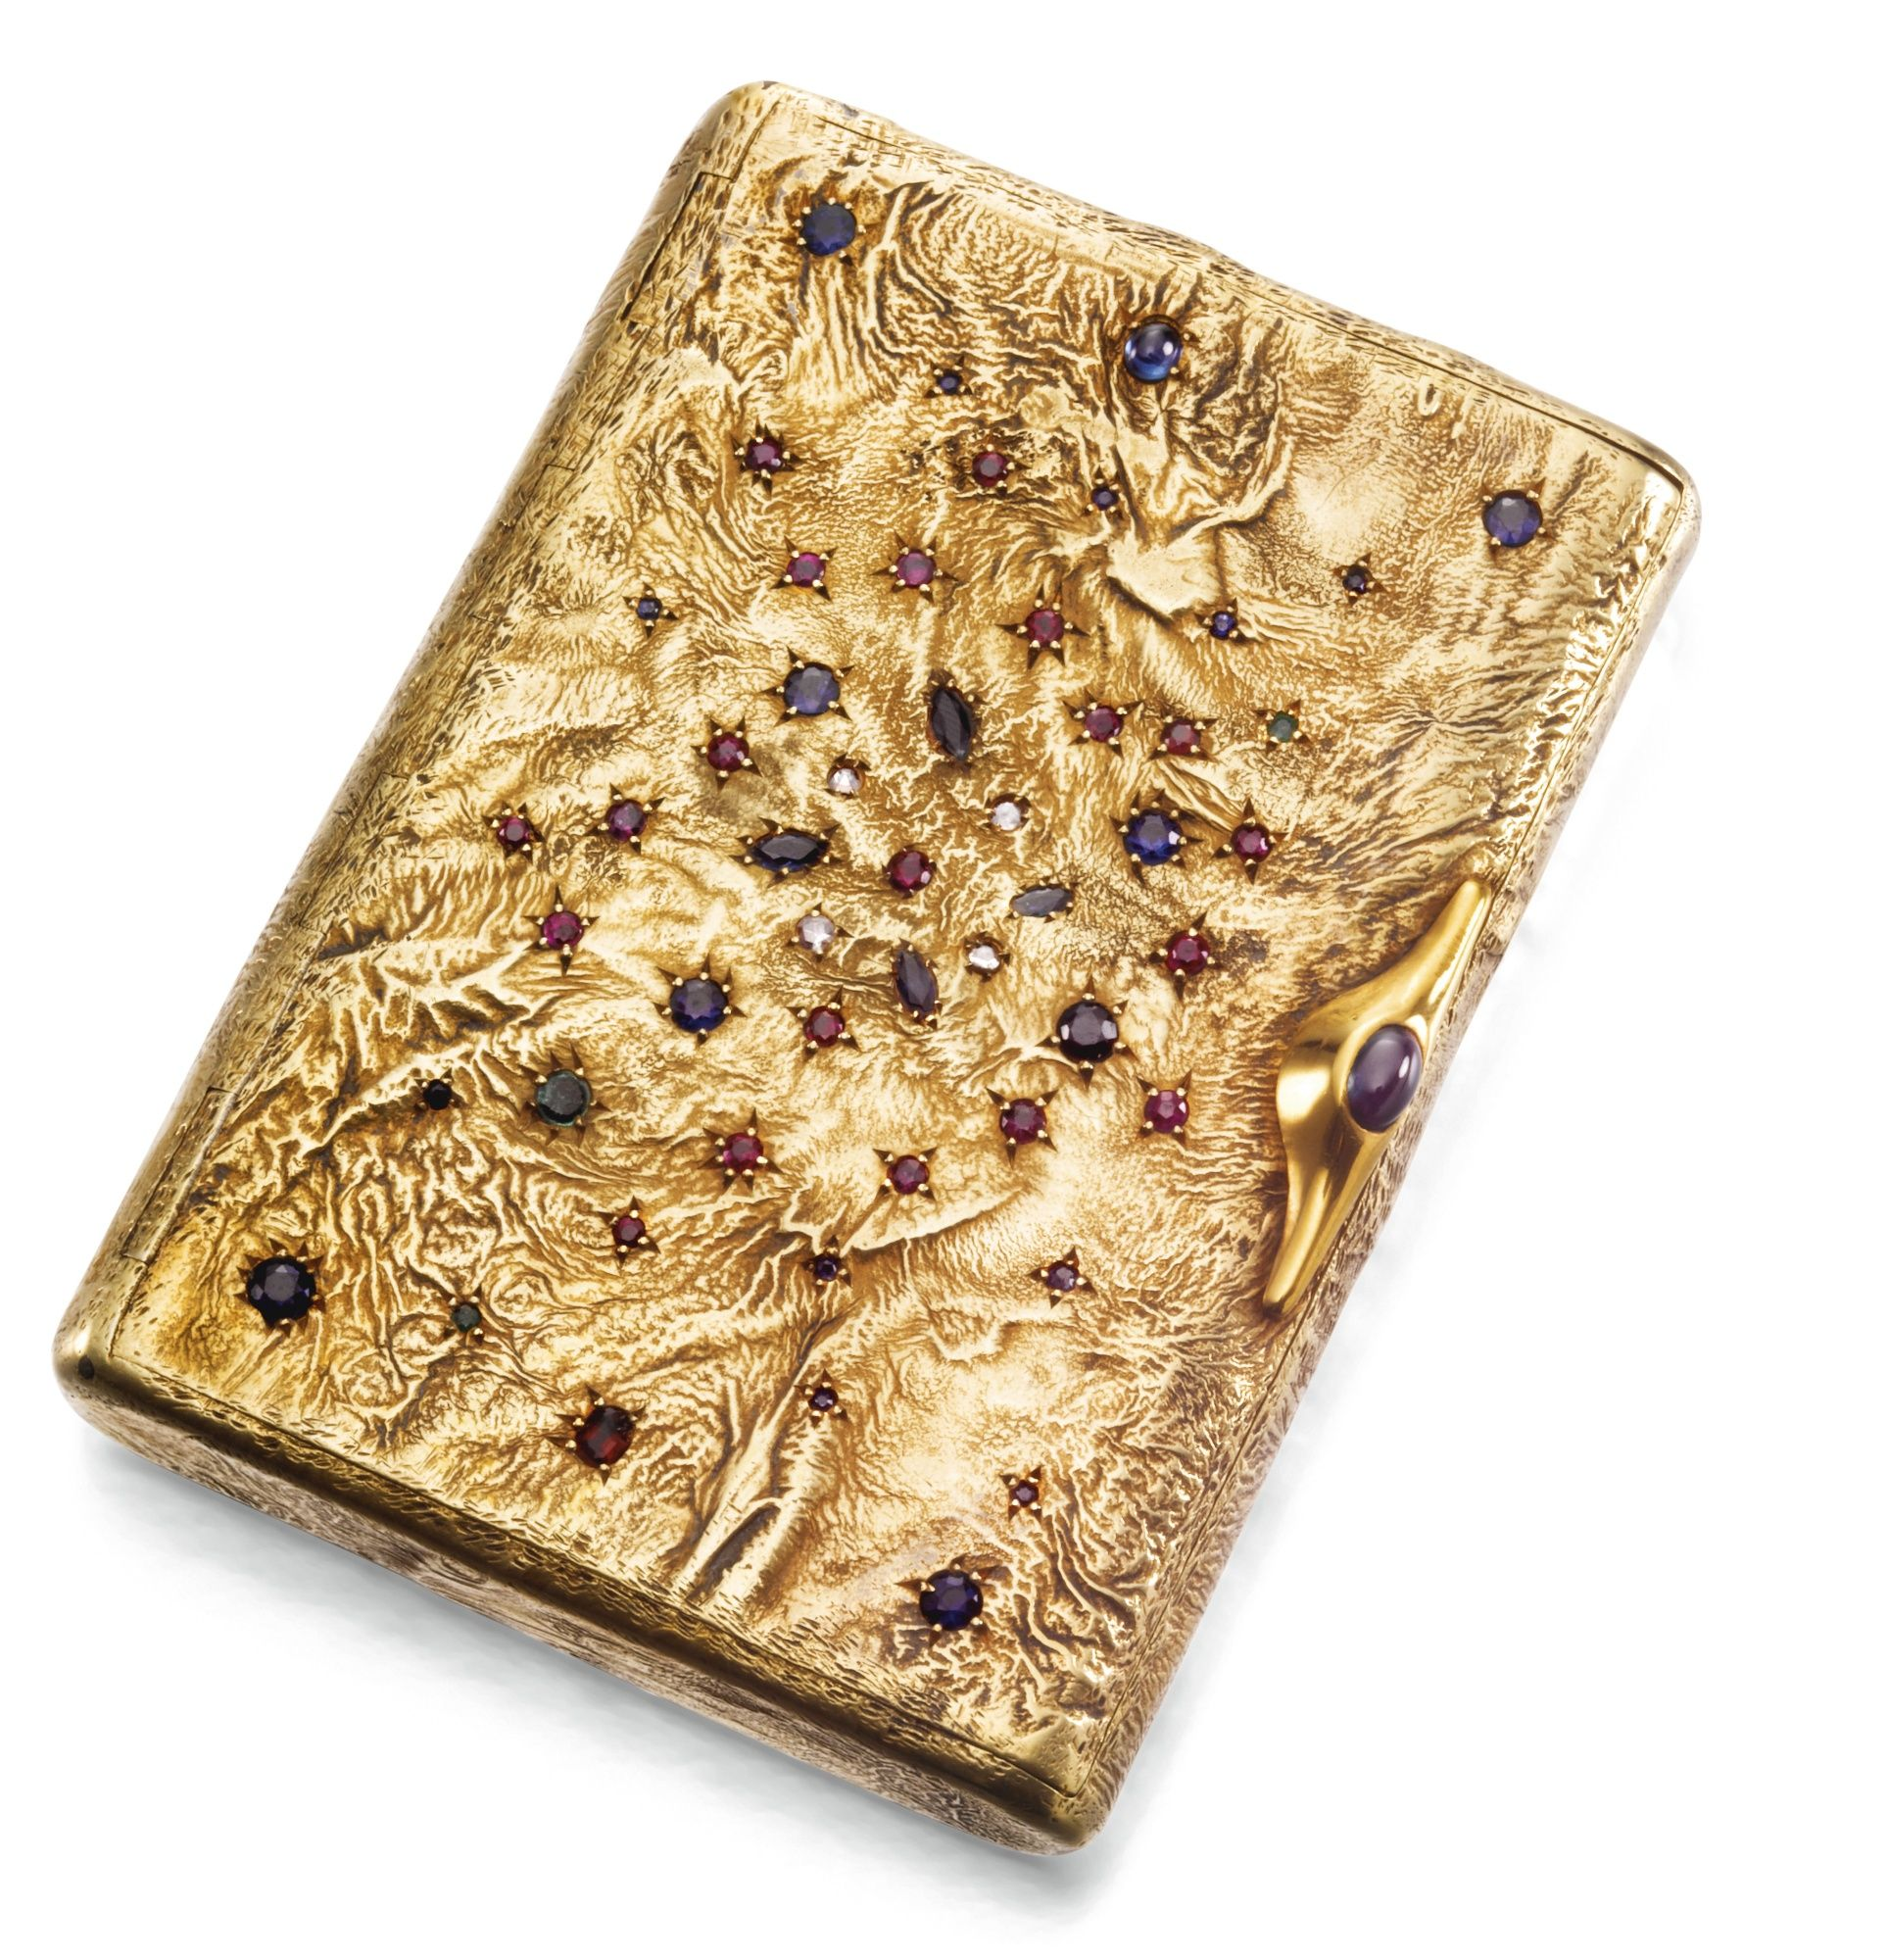 A FABERGÉ SILVER-GILT SAMORODOK CIGARETTE CASE, ST PETERSBURG, 1908-1917  ♨️More At FOSTERGINGER At Pinterest ♨️